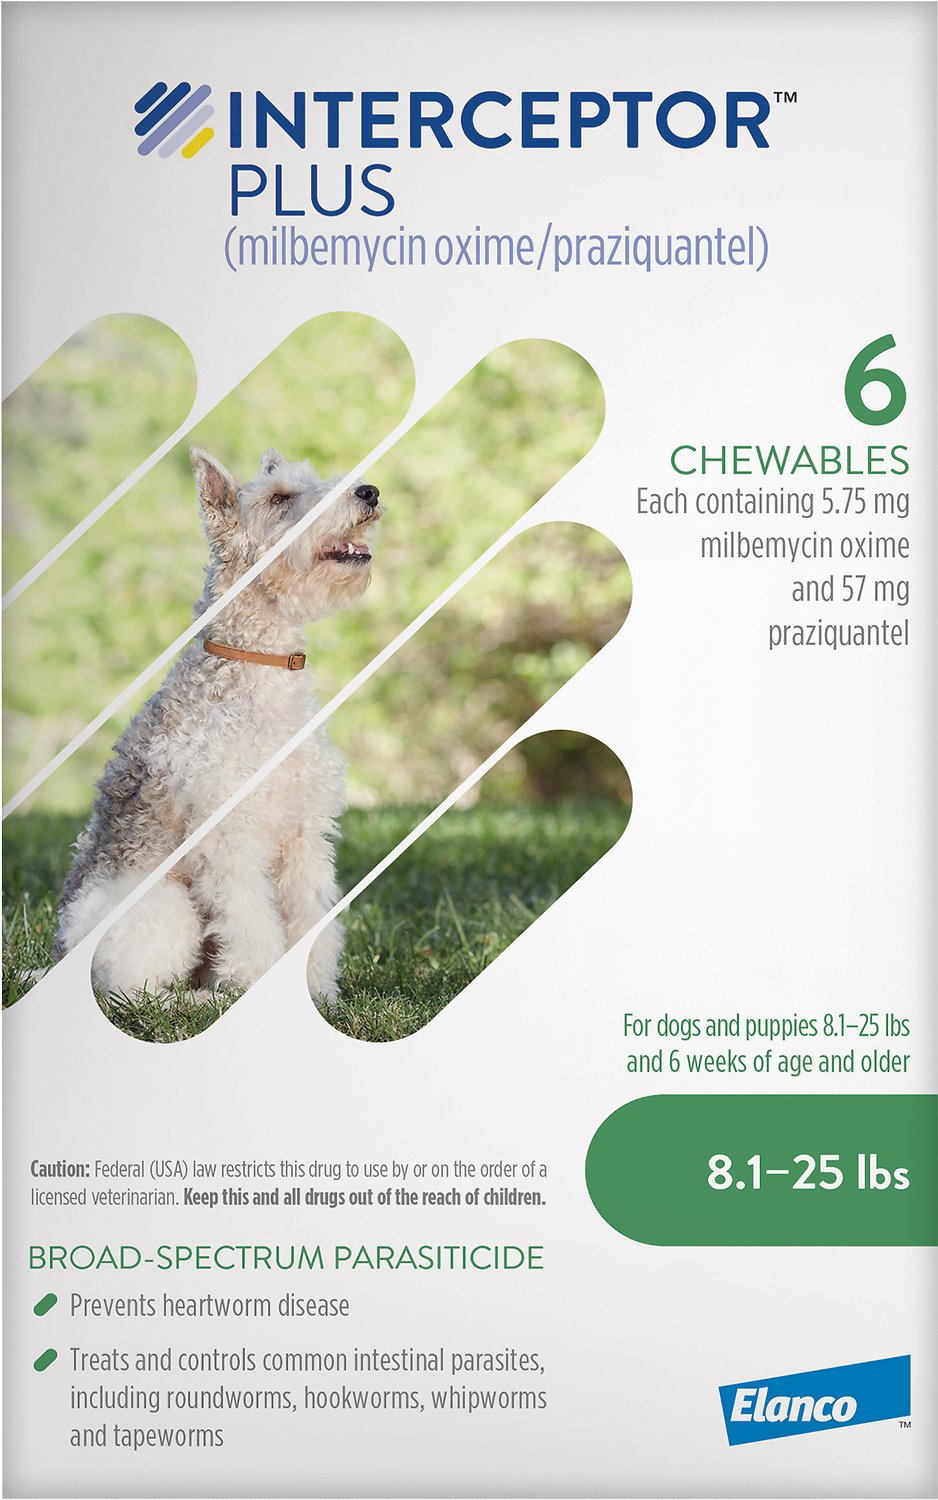 Interceptor Plus Chewable Tablets for Dogs, 8 1-25 lbs, 6 treatments